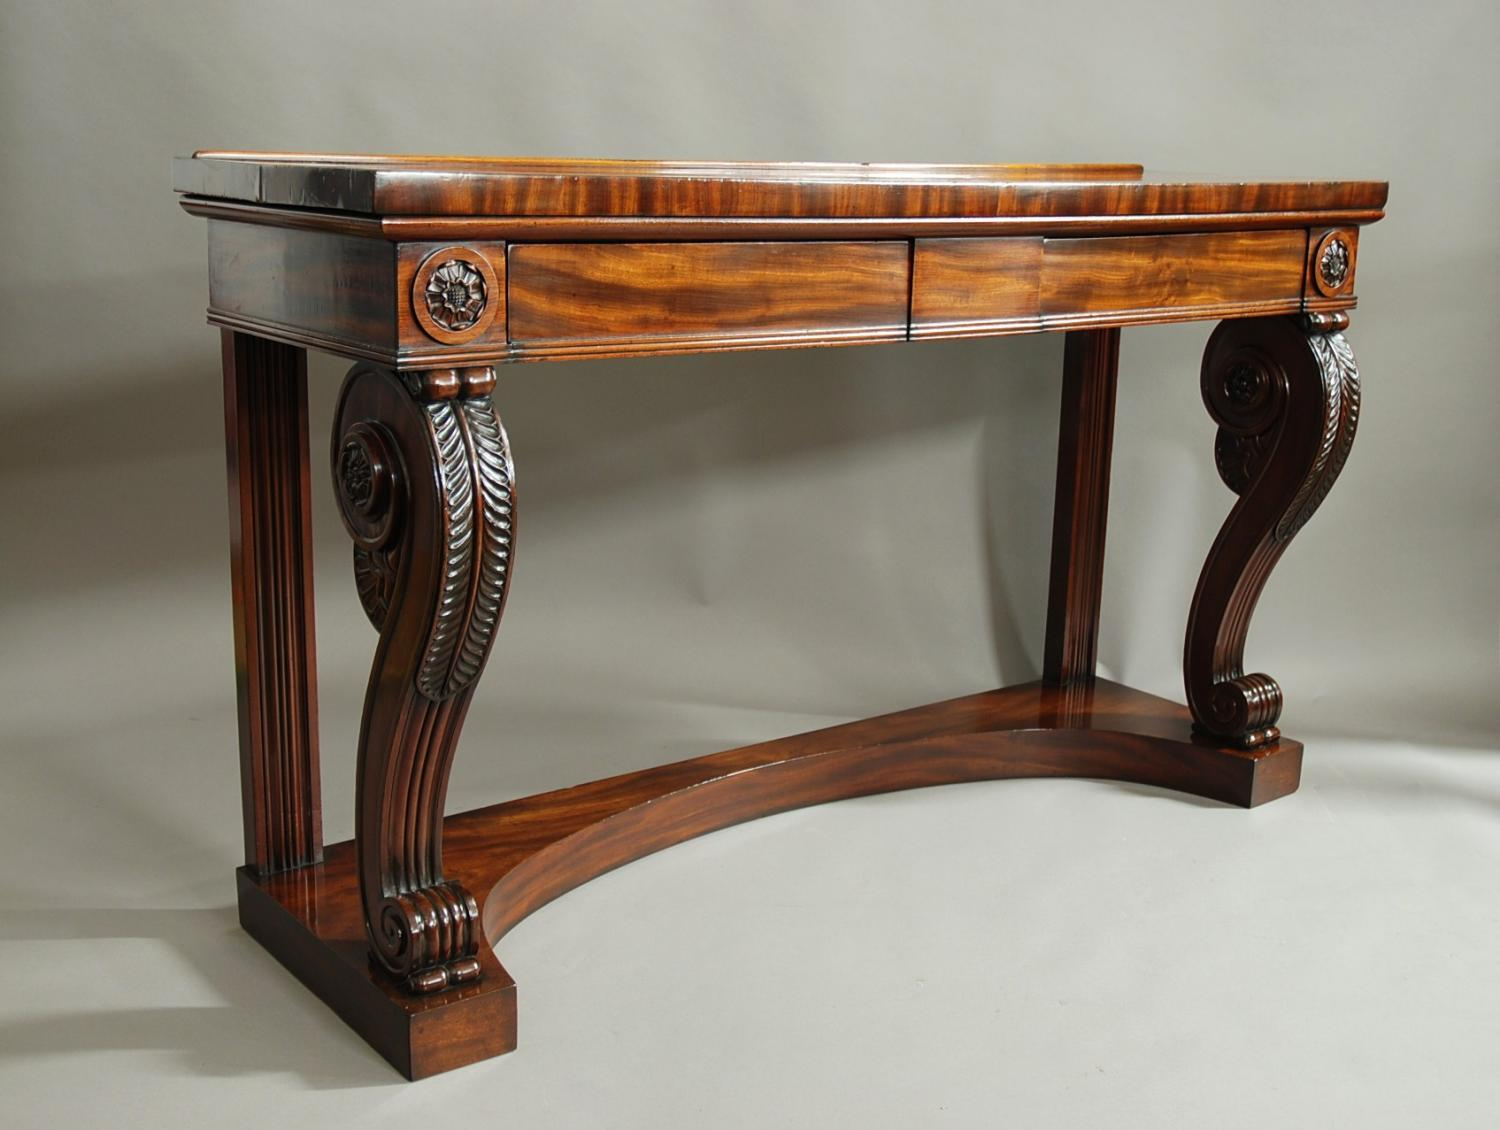 Superb quality 19thc mahogany console table